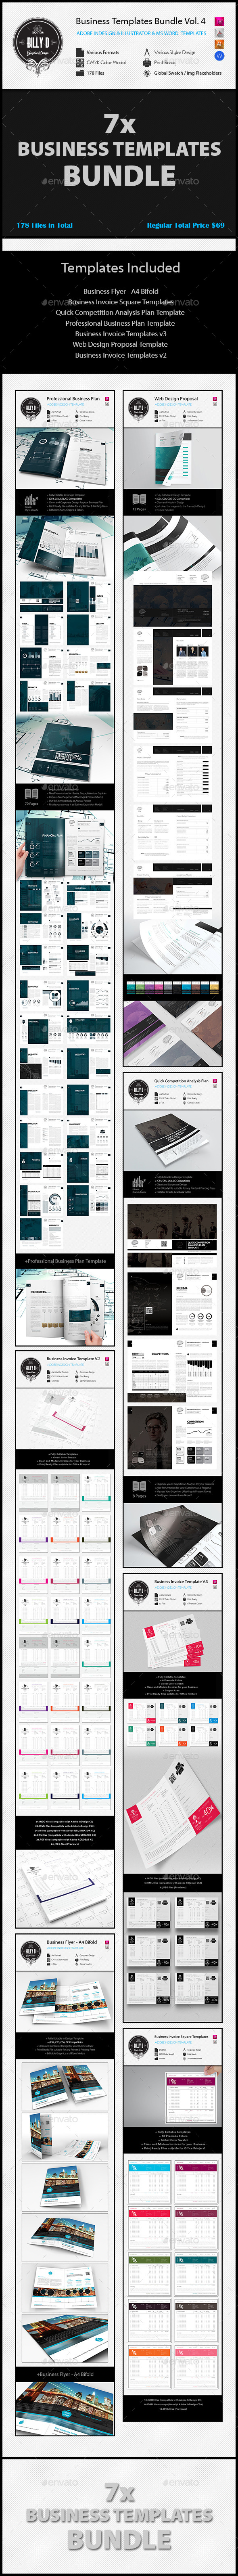 GraphicRiver Business Templates Bundle Vol.4 11637153